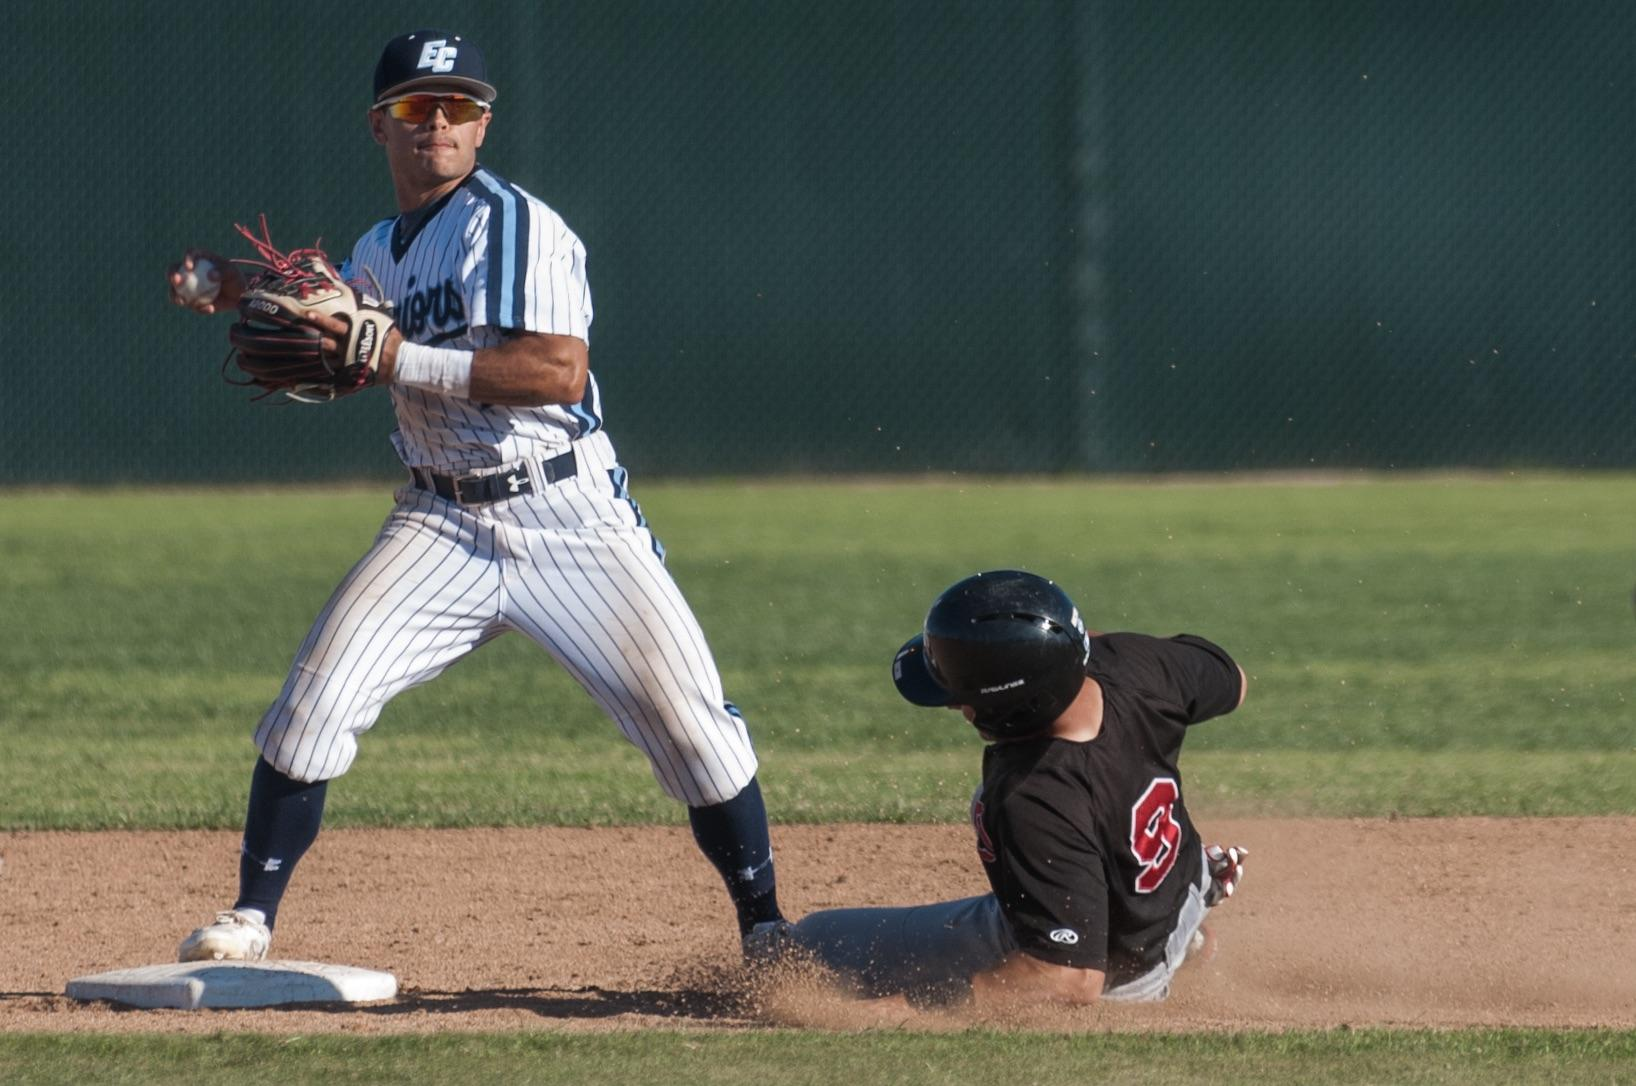 Another sixth-inning outburst pushes the El Camino baseball teams' winning streak to nine